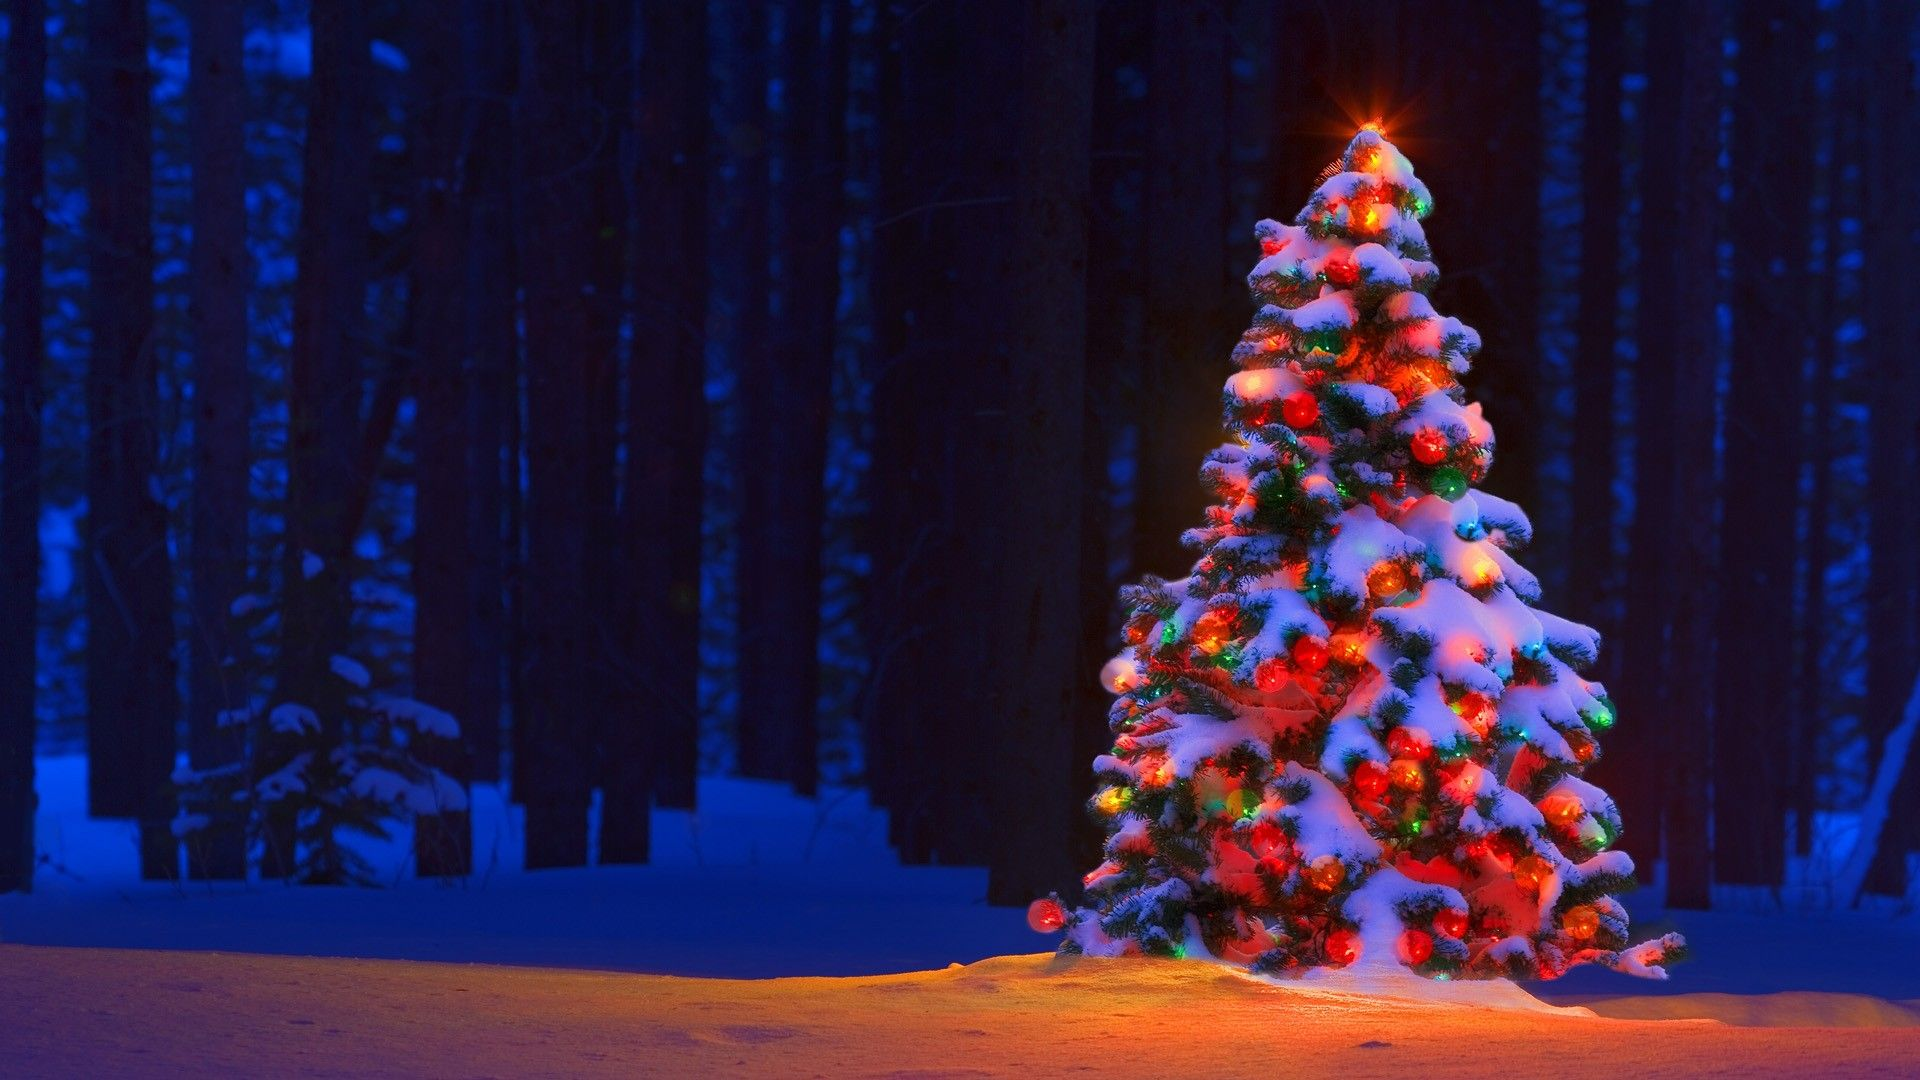 50 beautiful christmas tree wallpapers - Snow Christmas Tree